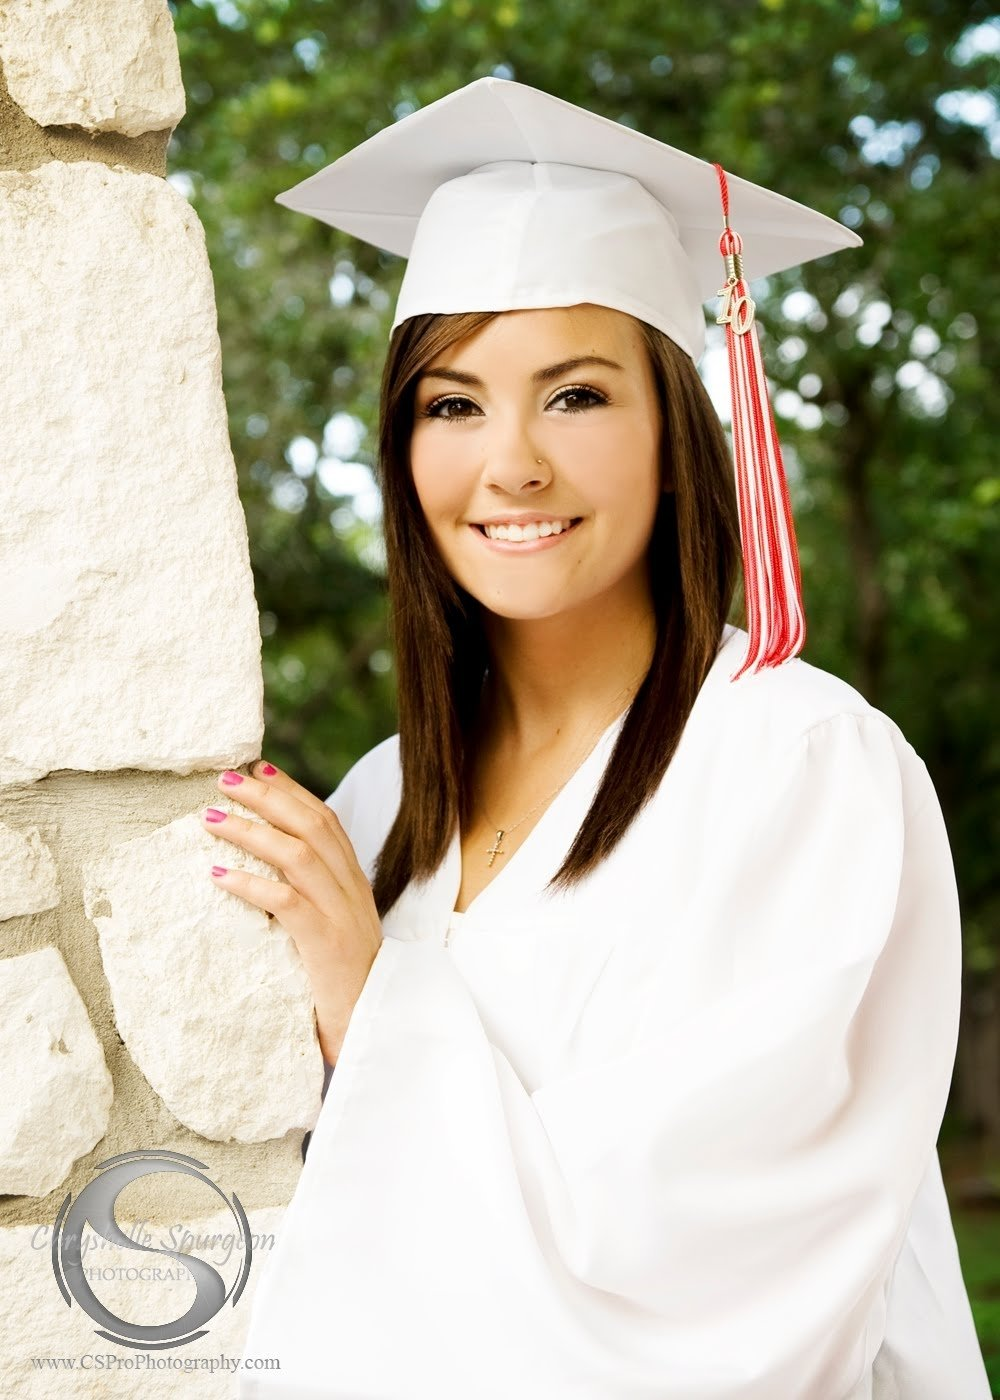 10 Gorgeous Cap And Gown Picture Ideas awesome senior picture ideas with cap and gown selection photo and 2020